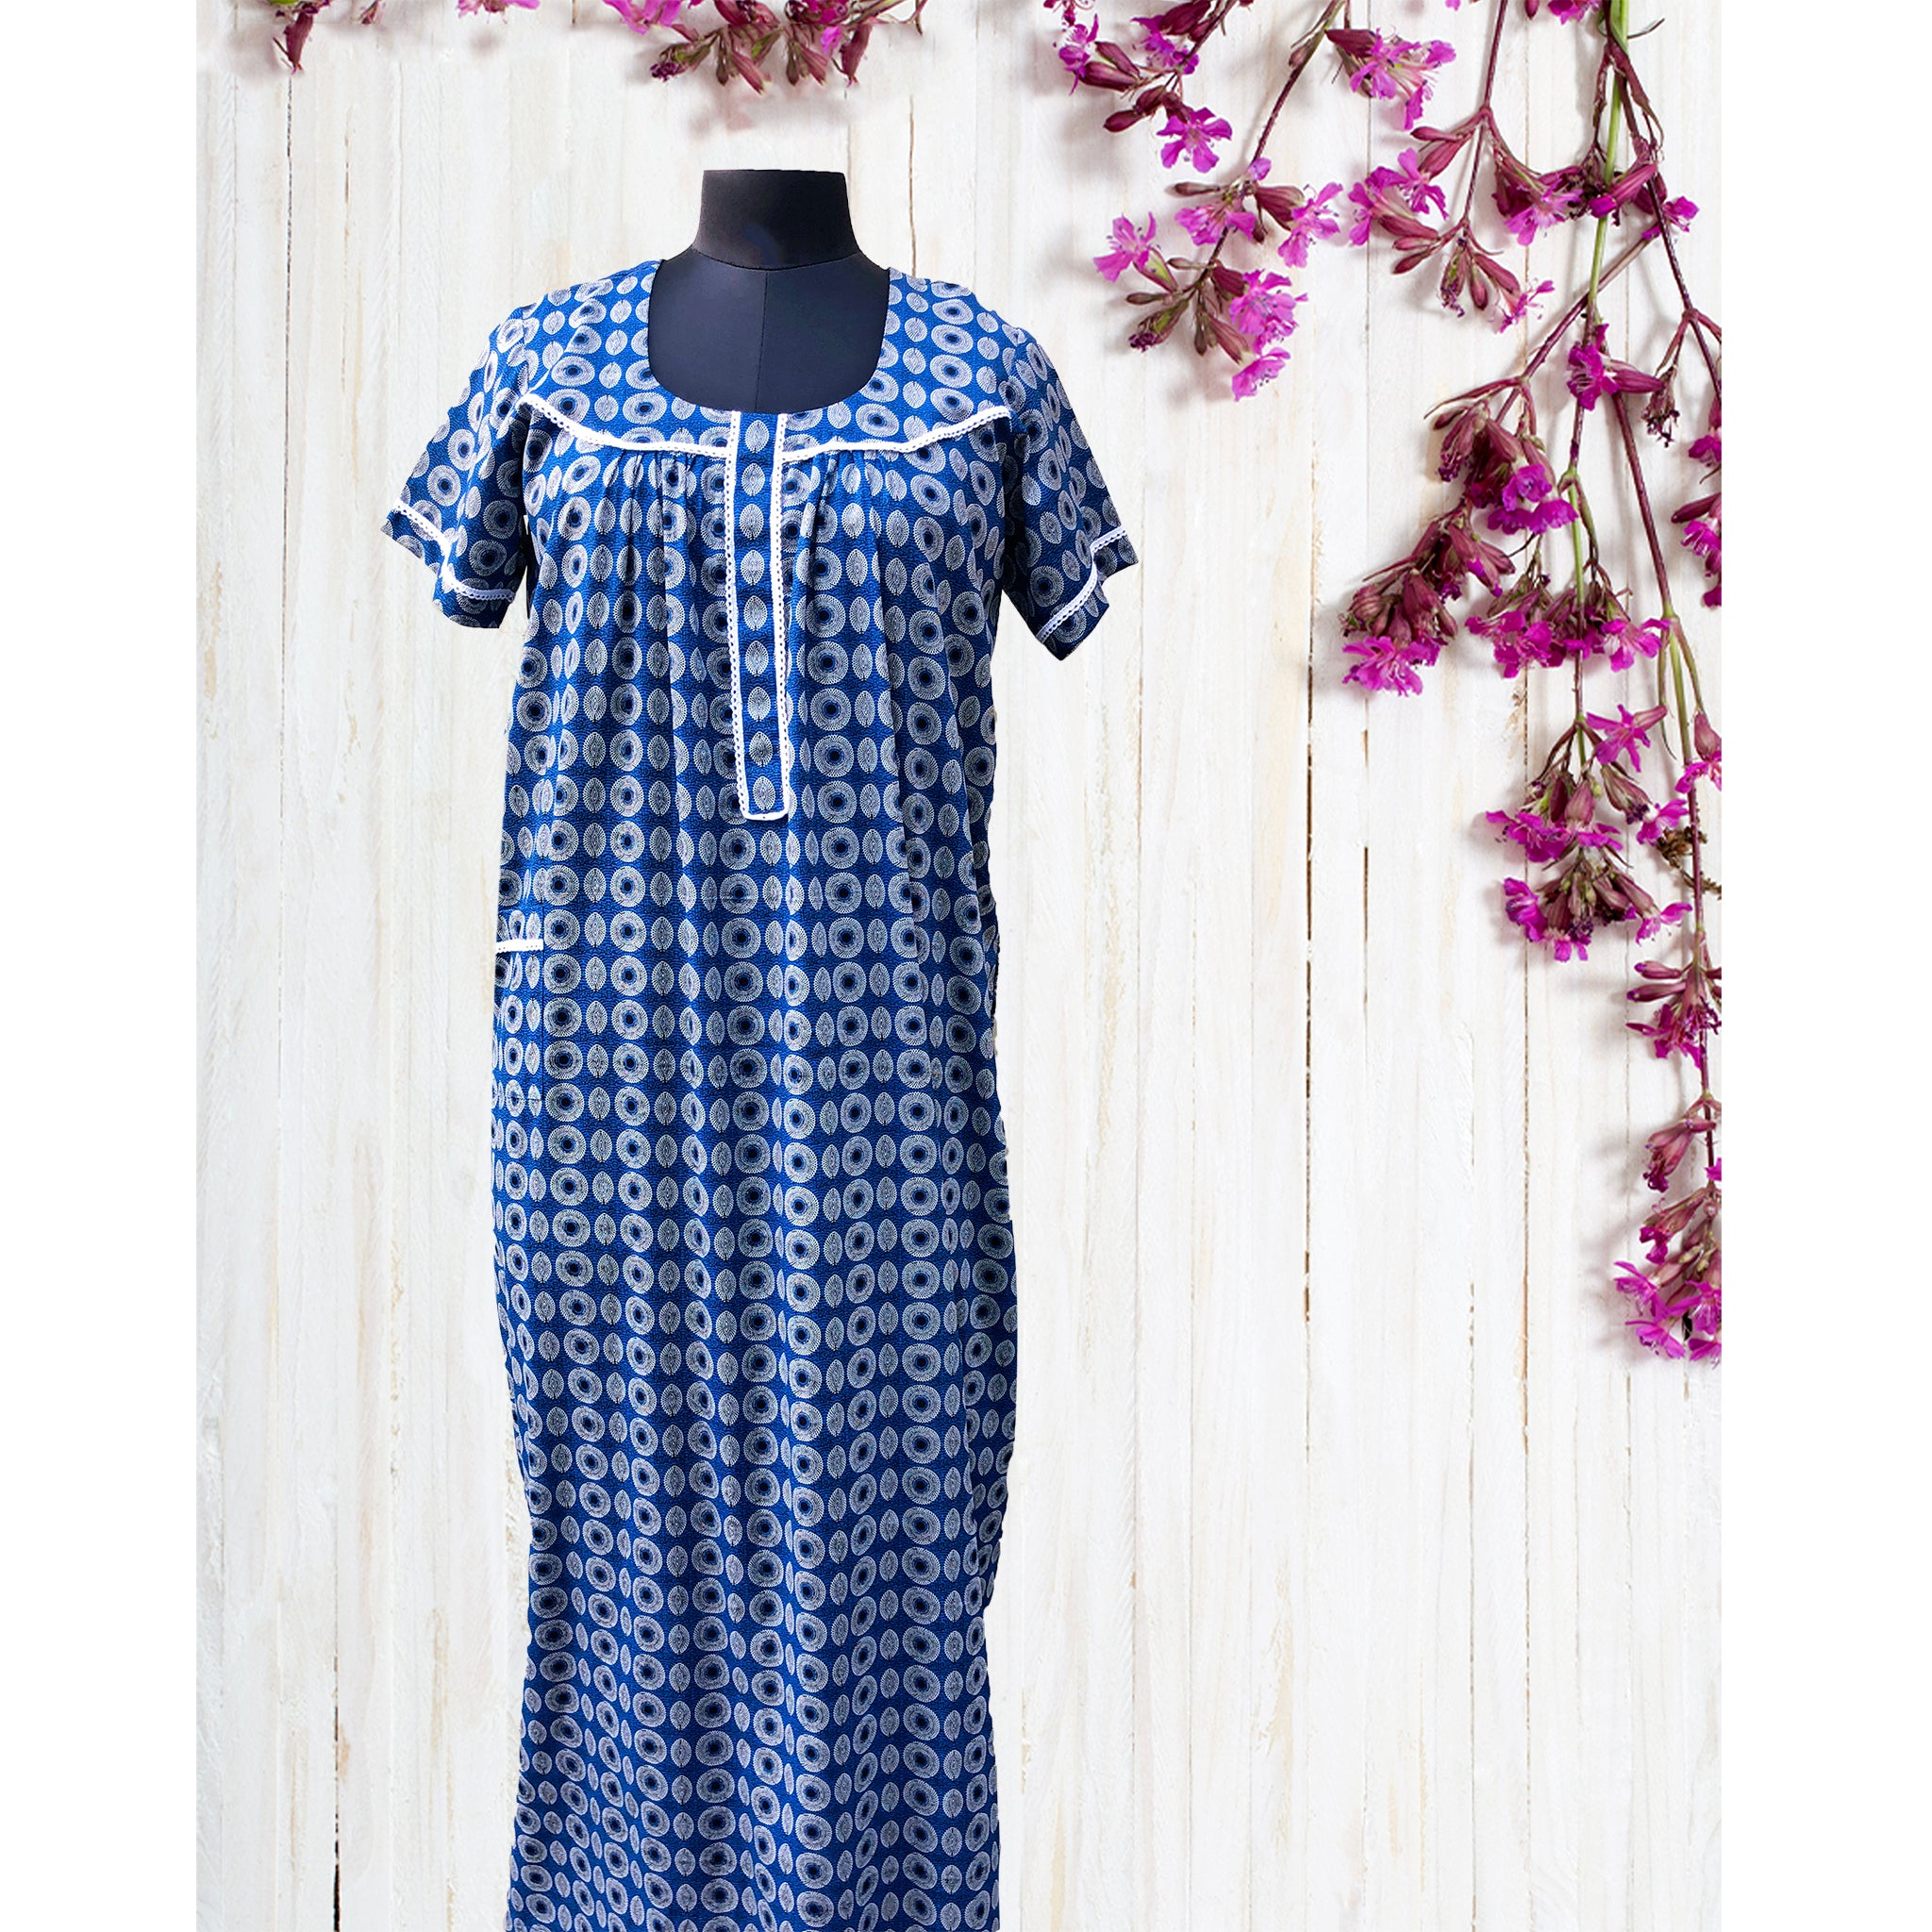 Trippy Blue Circular Night Dress